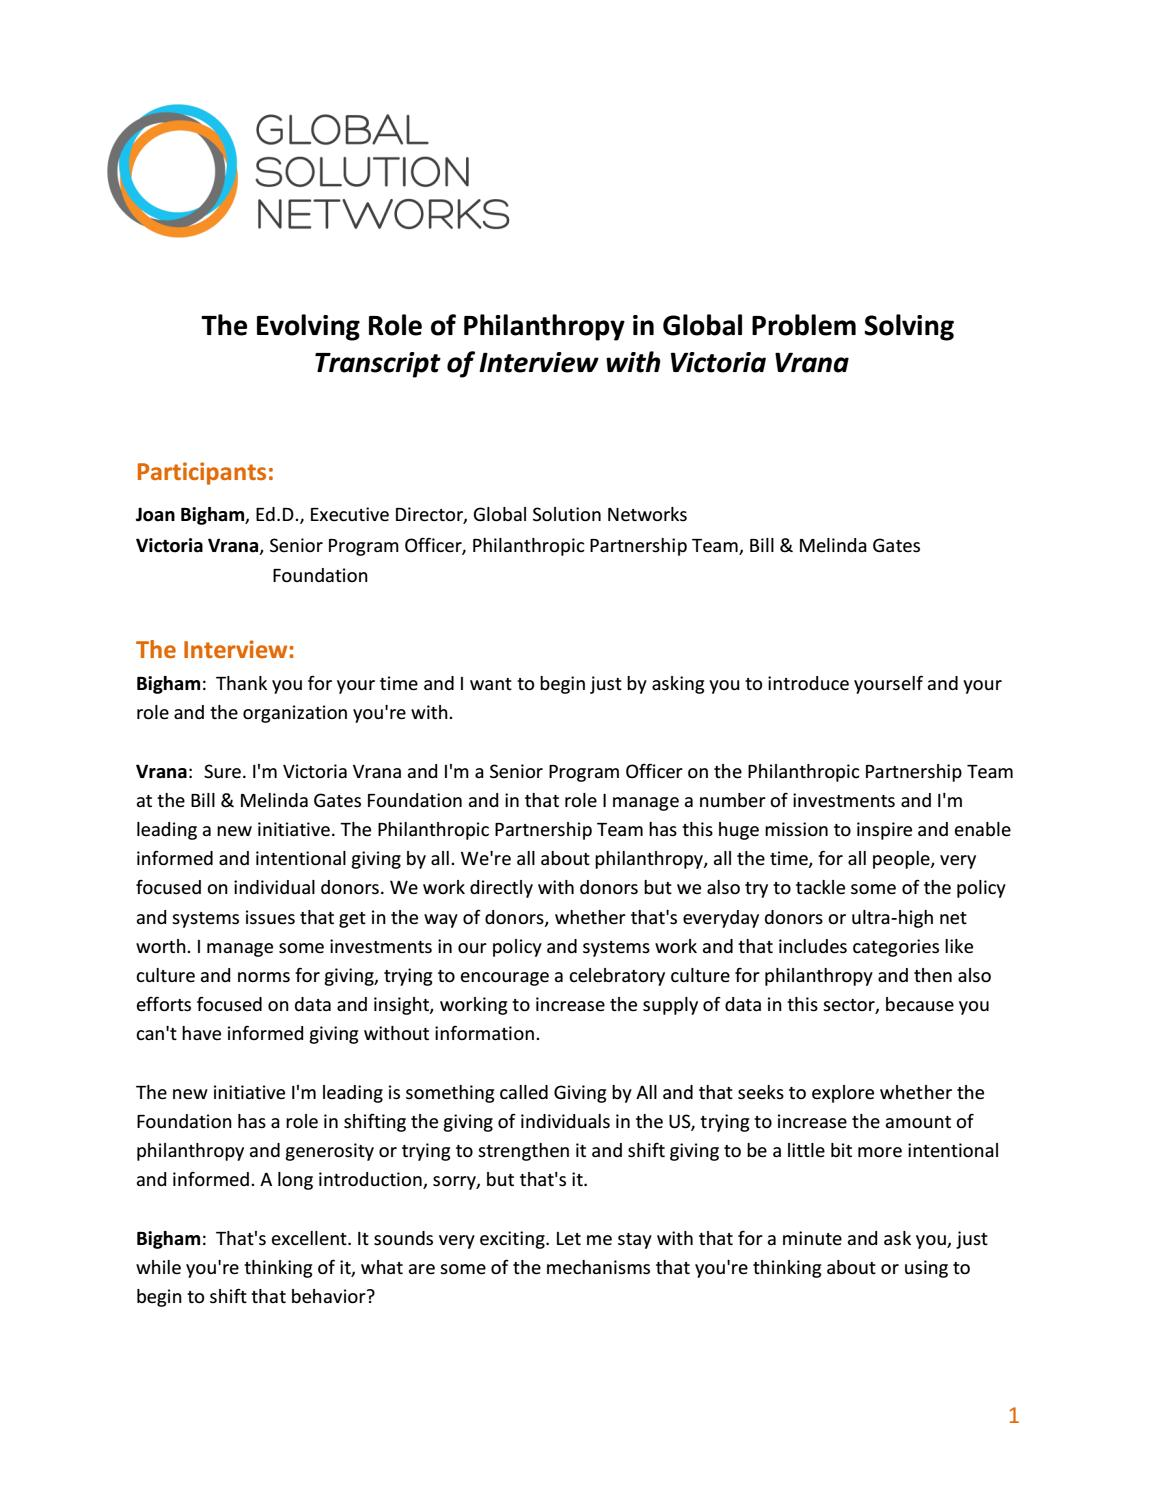 role of philanthropy interview victoria vrana by global role of philanthropy interview victoria vrana by global solution networks page 1 issuu